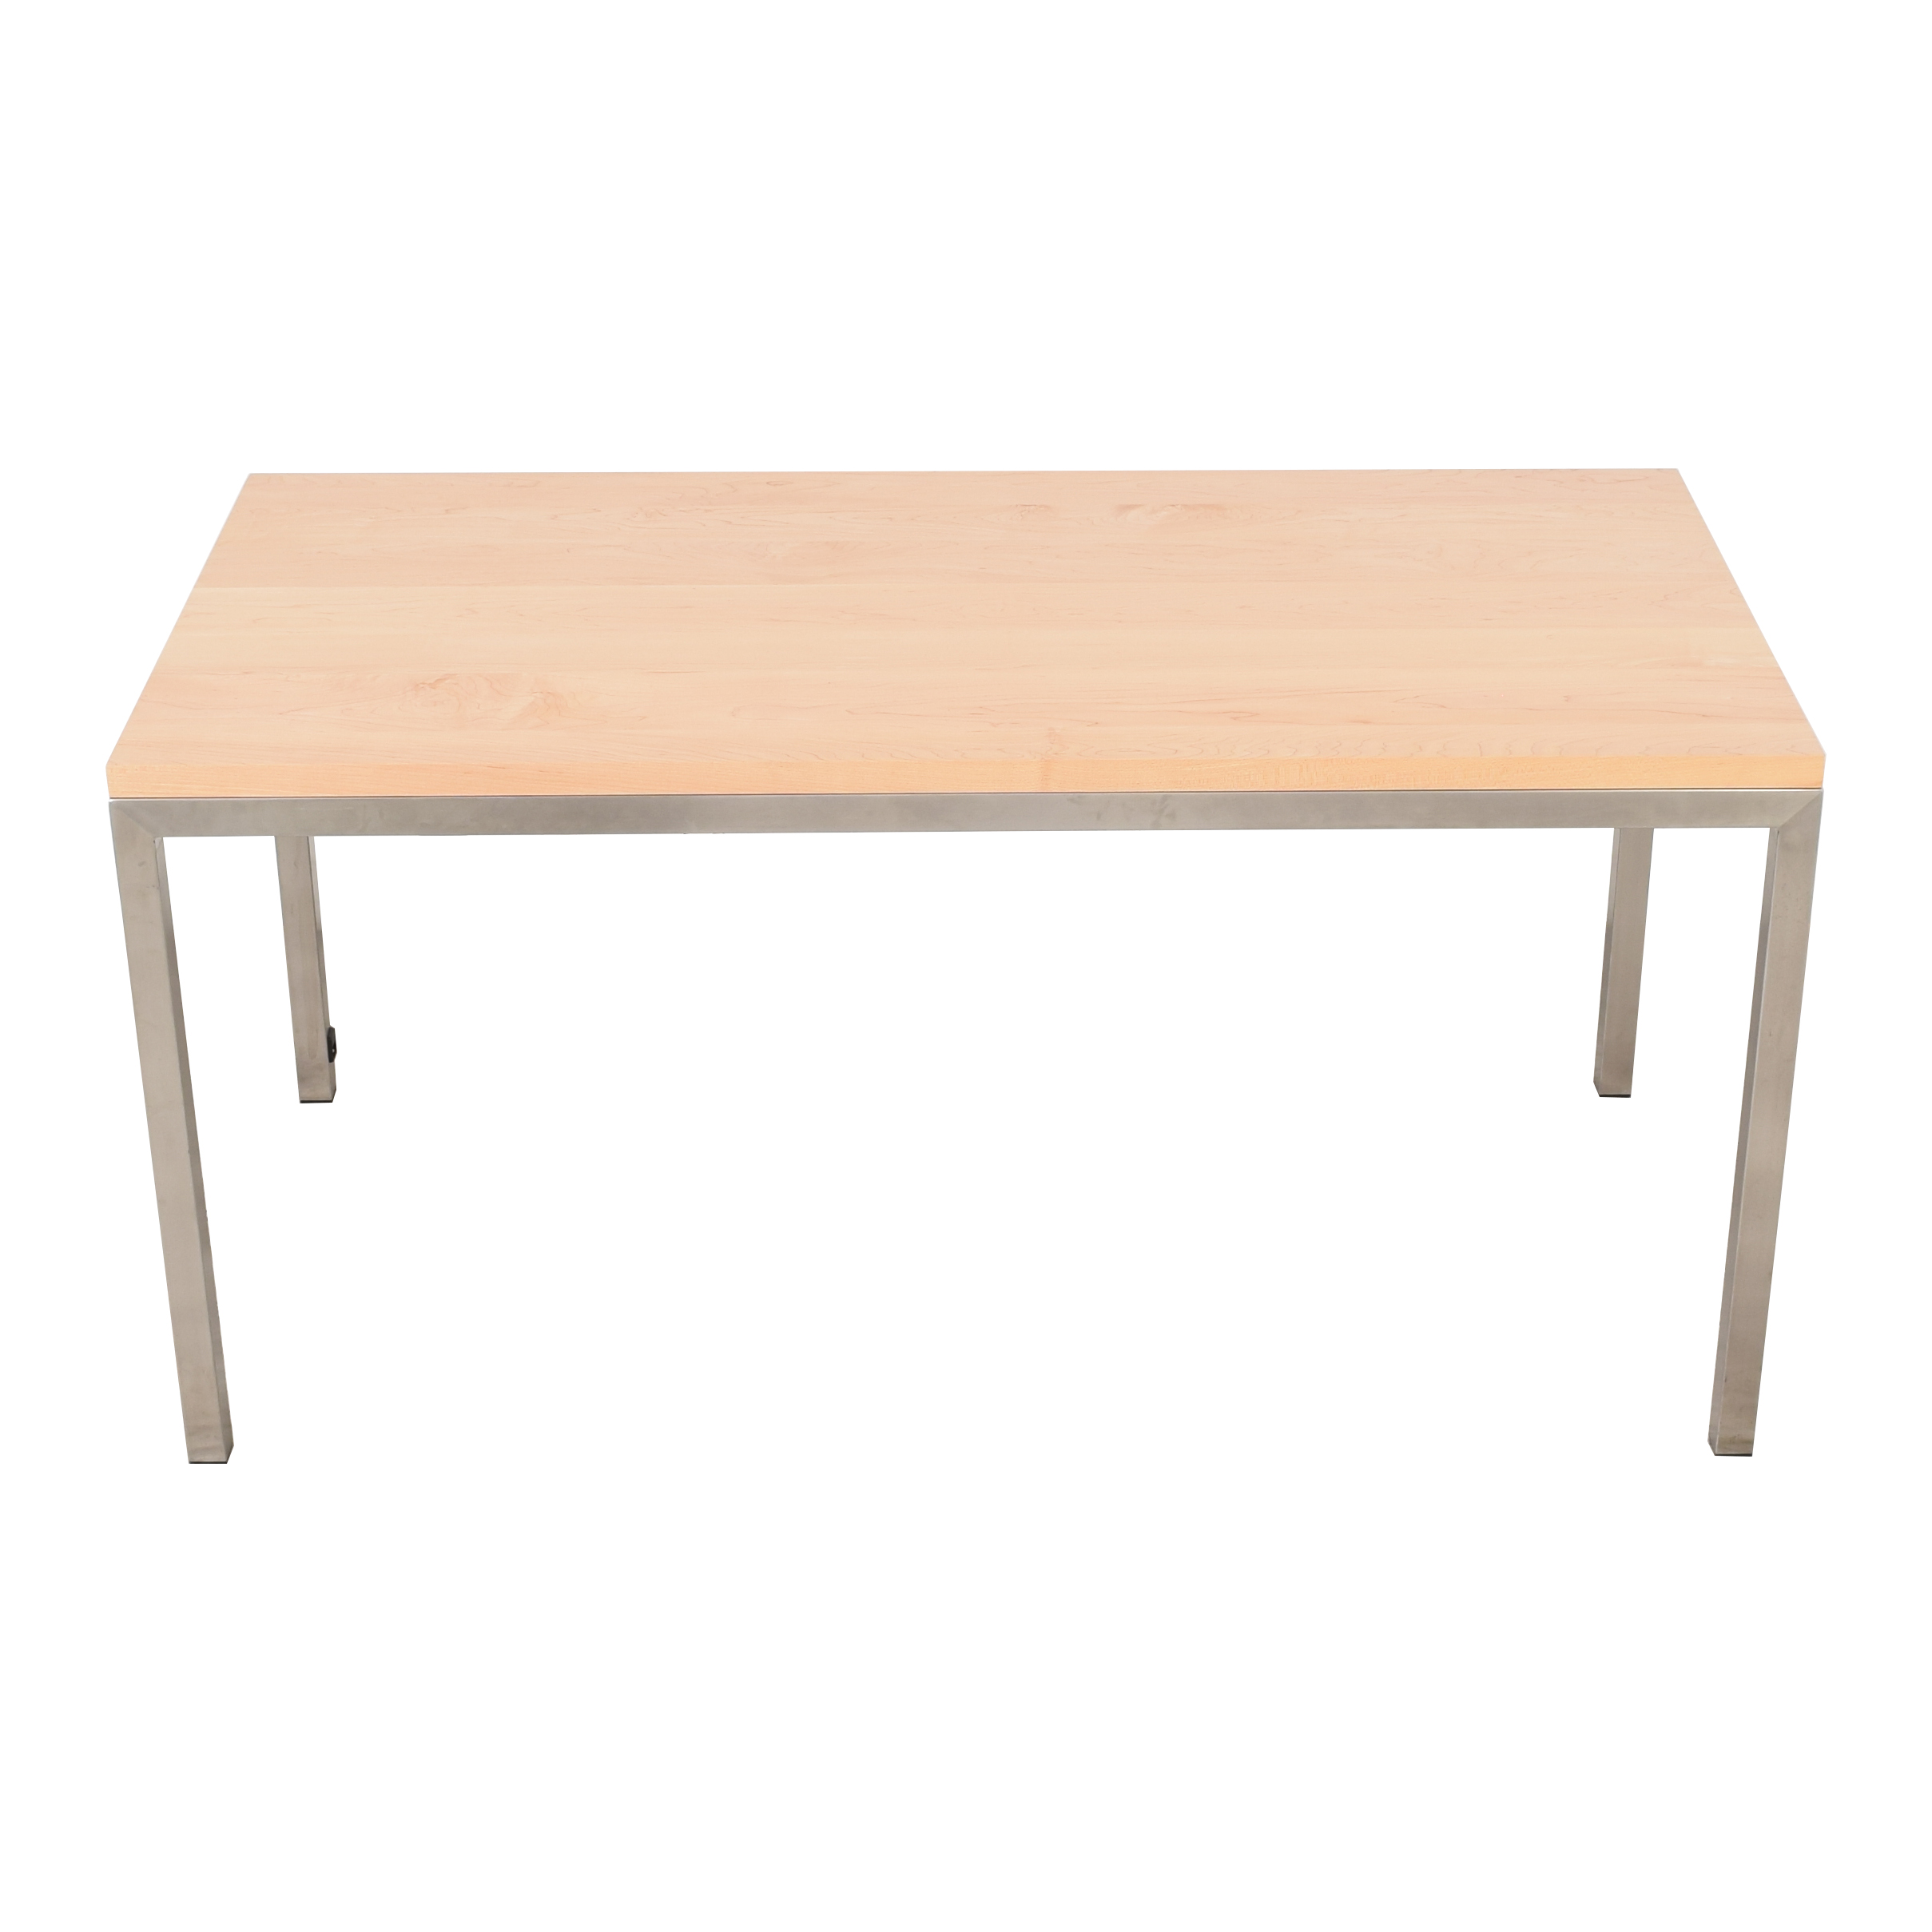 Room & Board Room & Board Portica Desk for sale